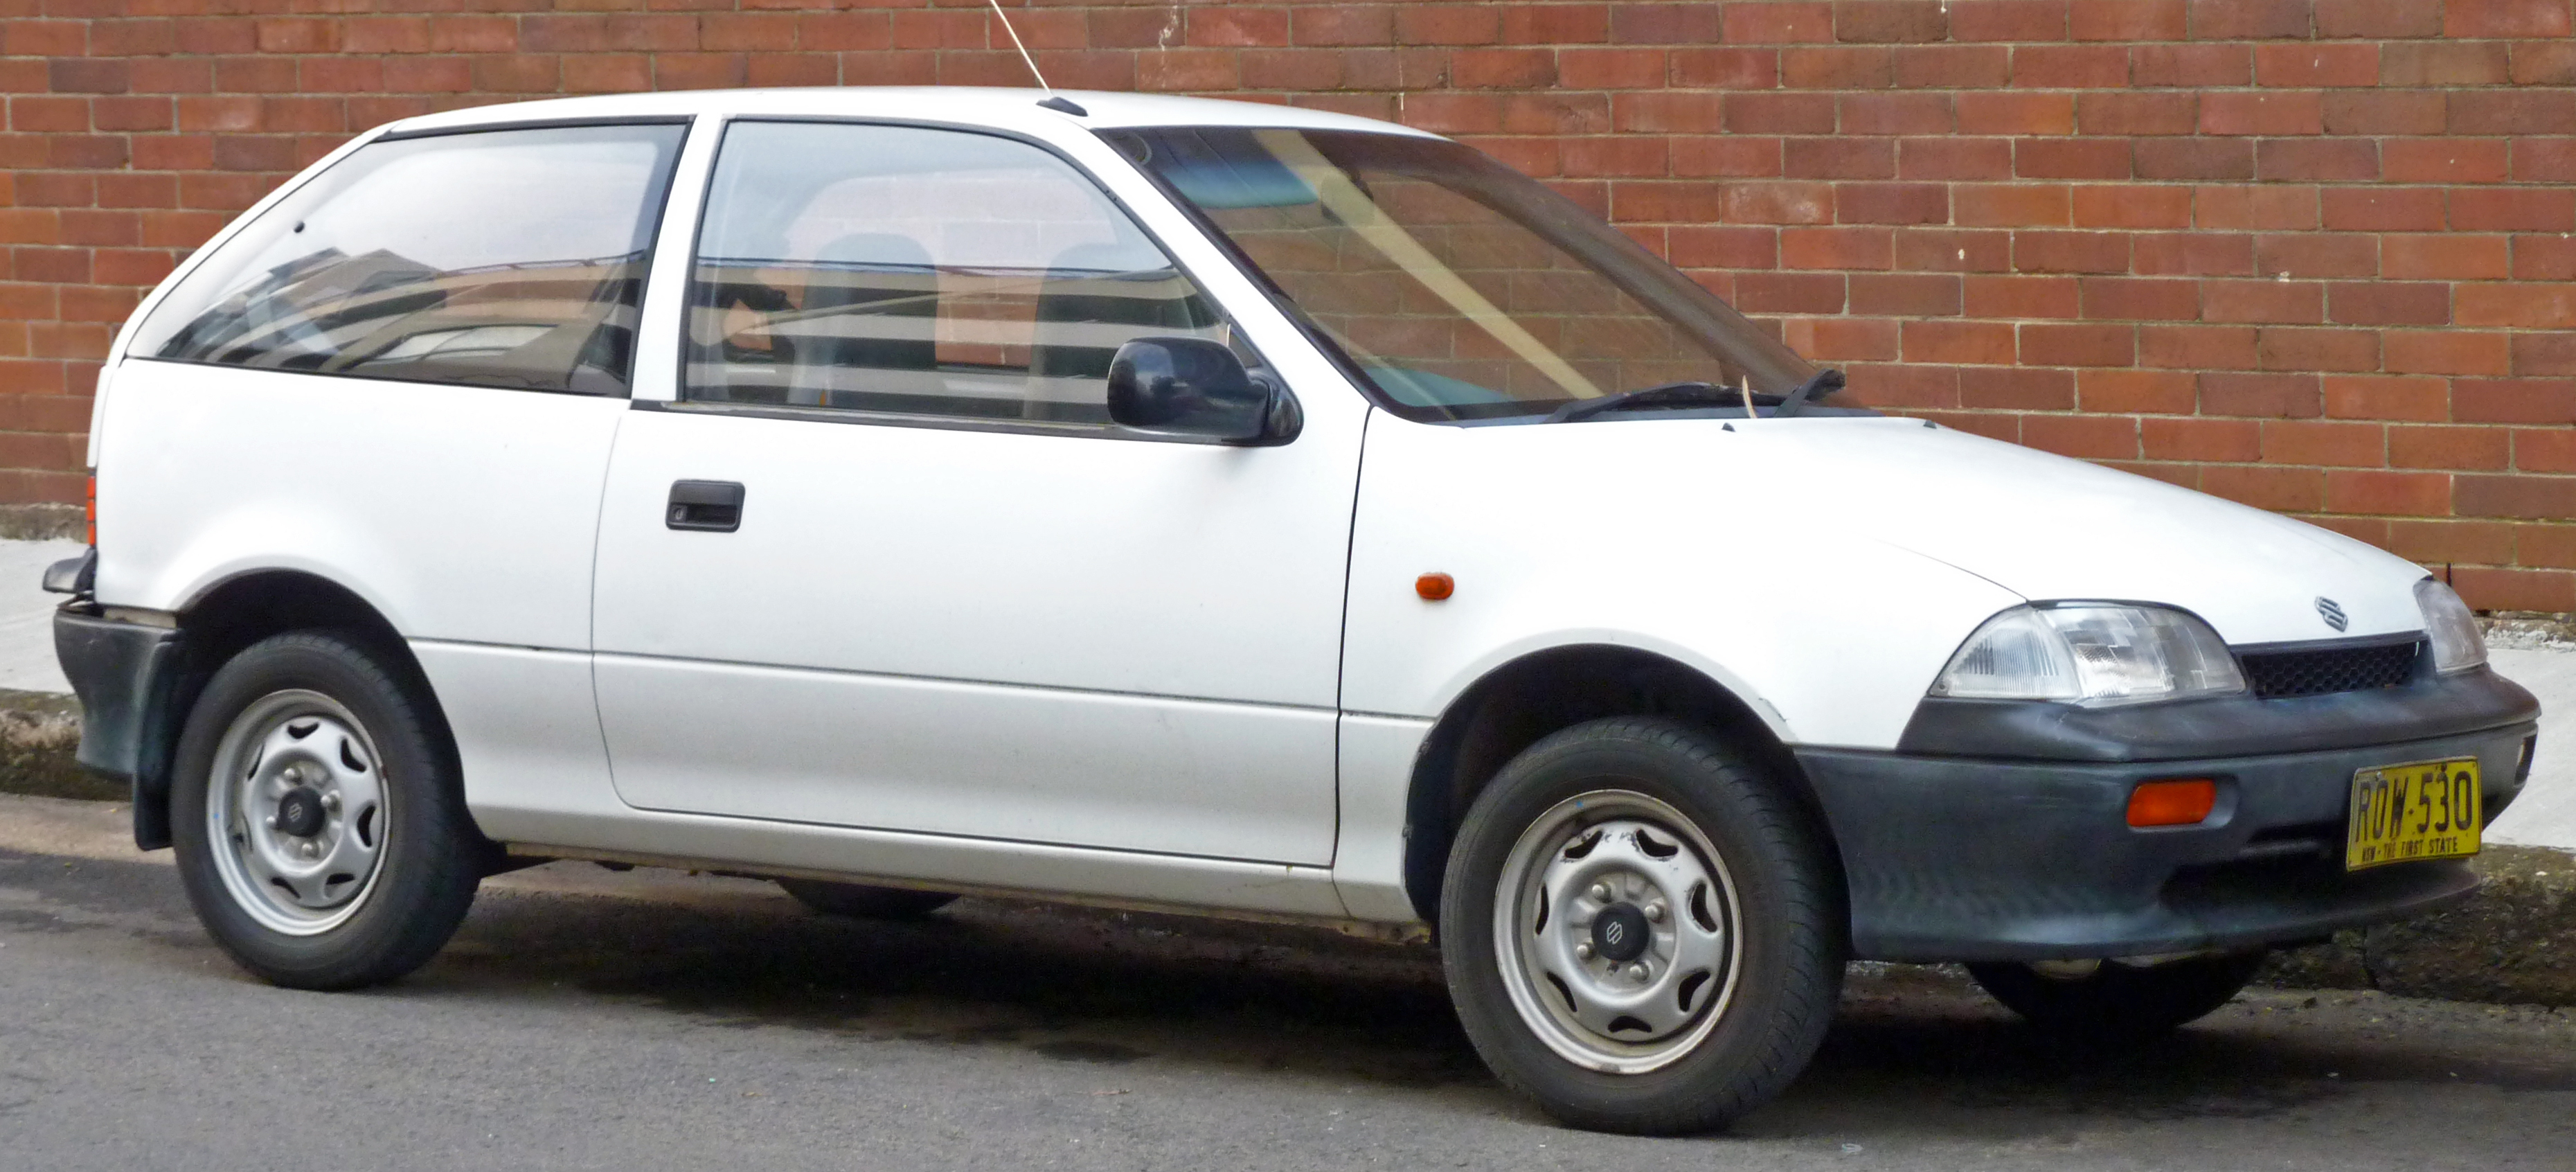 File 1989 1991 Suzuki Swift Ga 3 Door Hatchback 01 Jpg